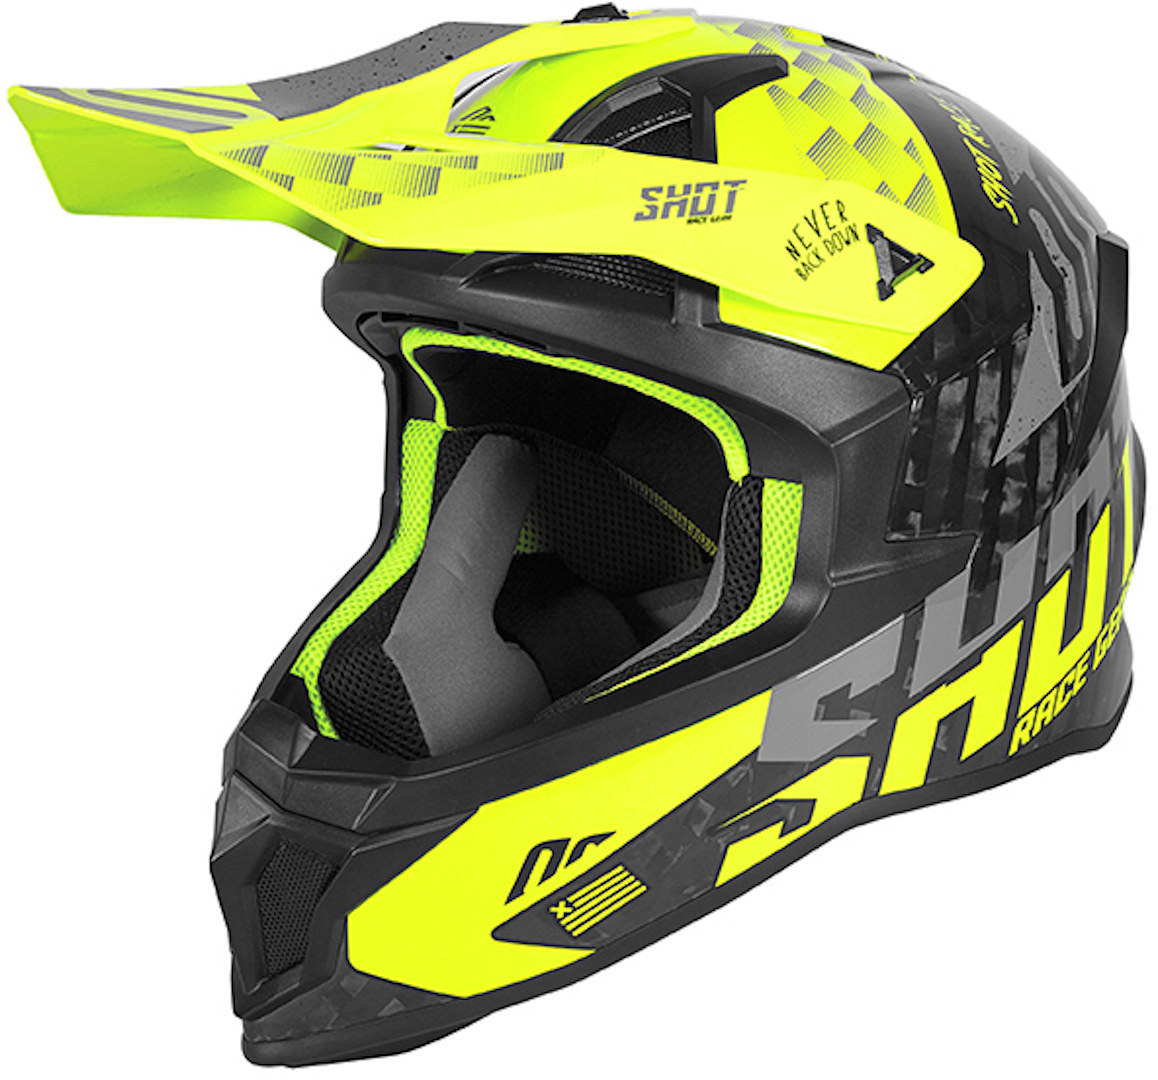 Shot Lite Carbon Rush Motocross Helmet, yellow, Size L, yellow, Size L from Shot